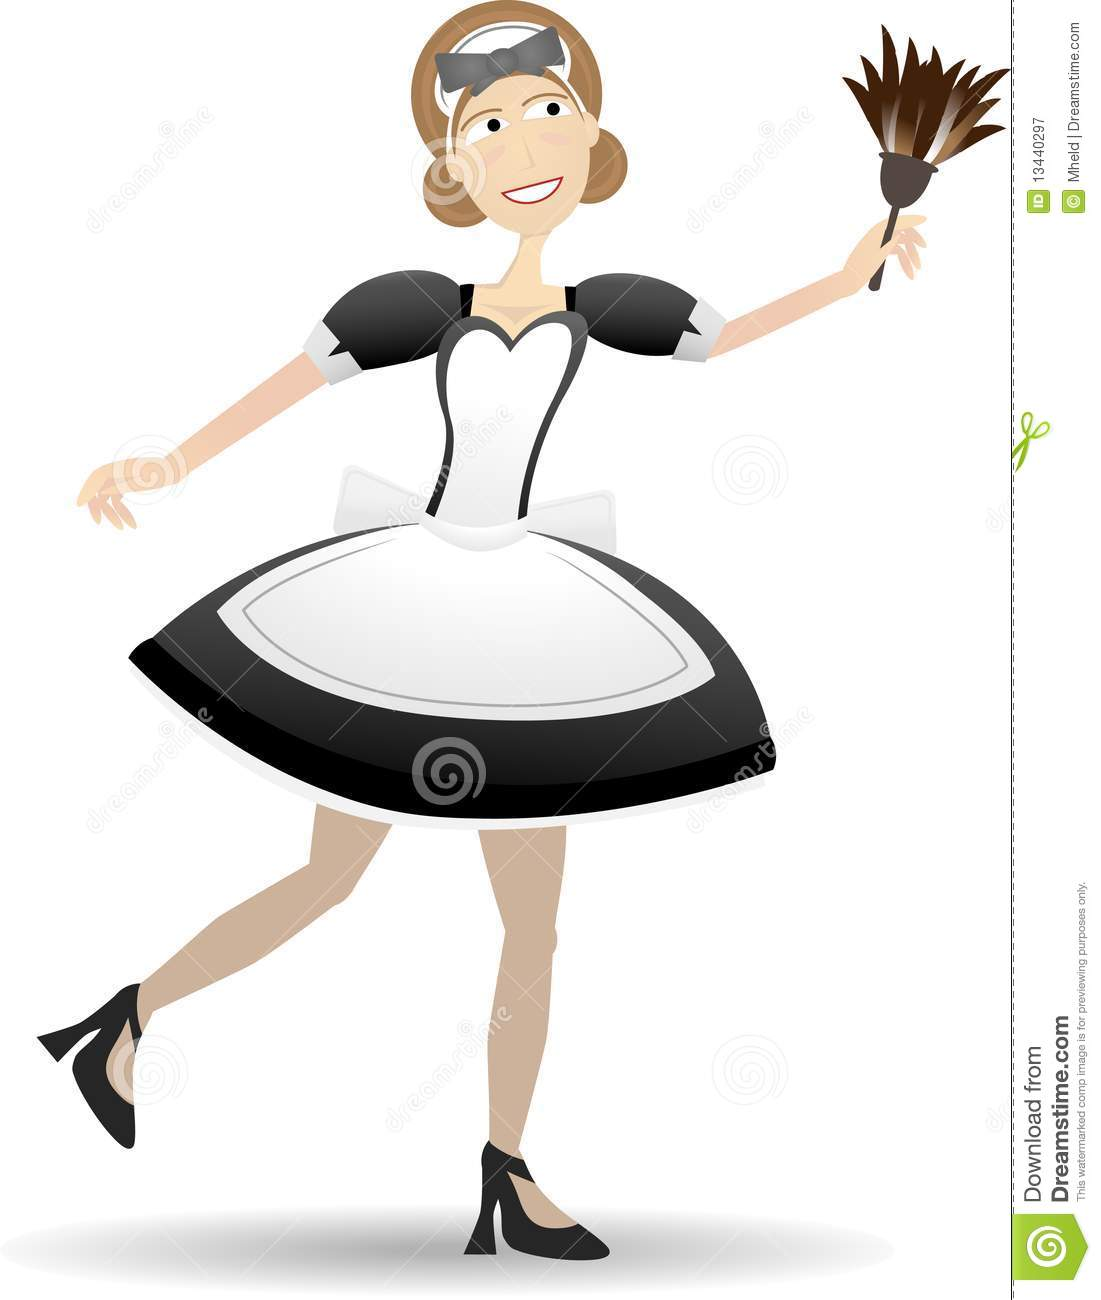 Royalty Free Stock Photography Cartoon Maid Holding Duster Vector Illustration Image13440297 on Elements And Pounds